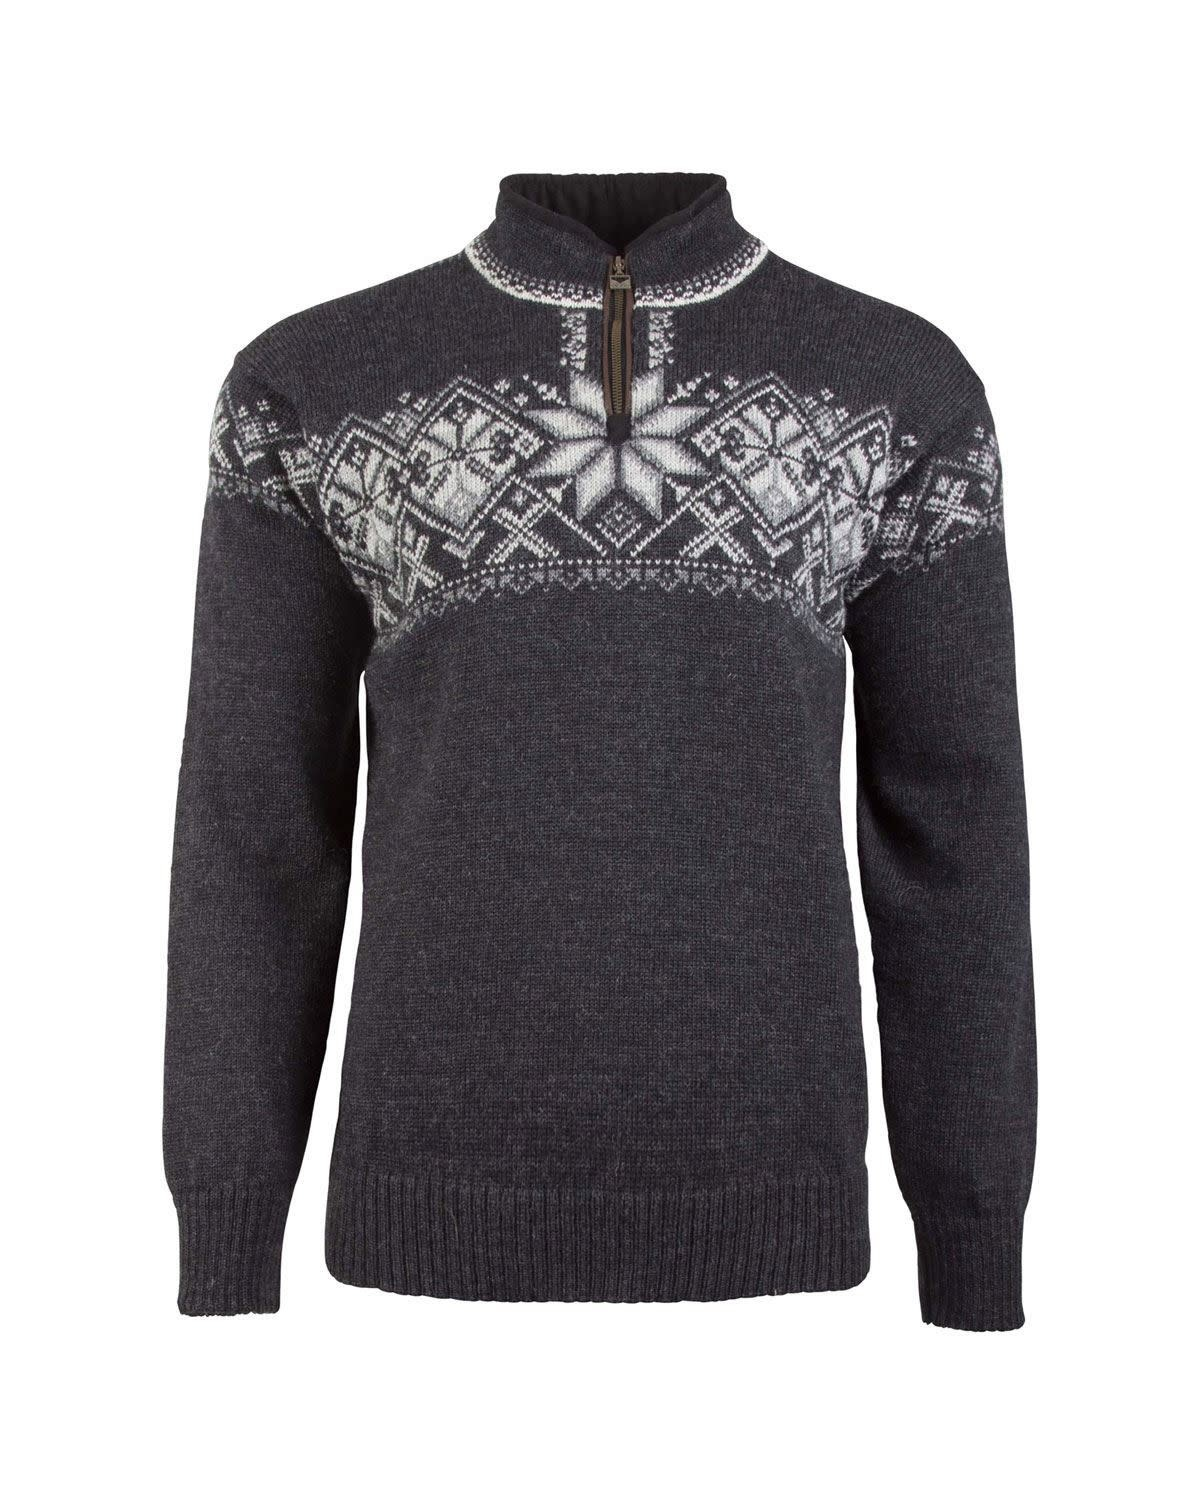 Dale of Norway Geiranger masculine sweater